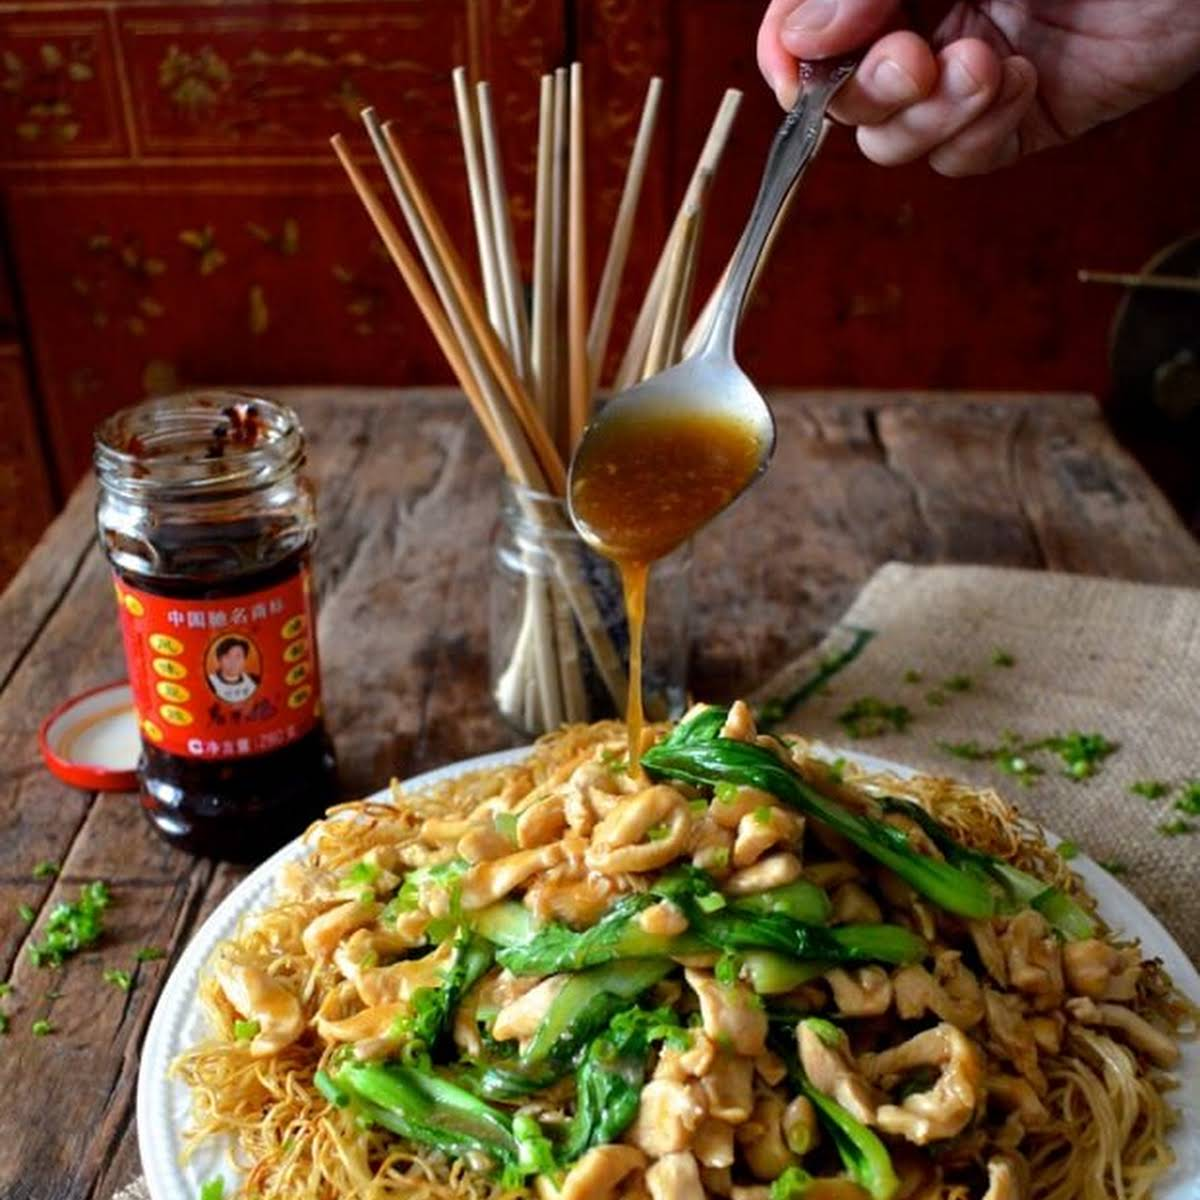 Chicken Pan-Fried Noodles (Gai See Chow Mein)